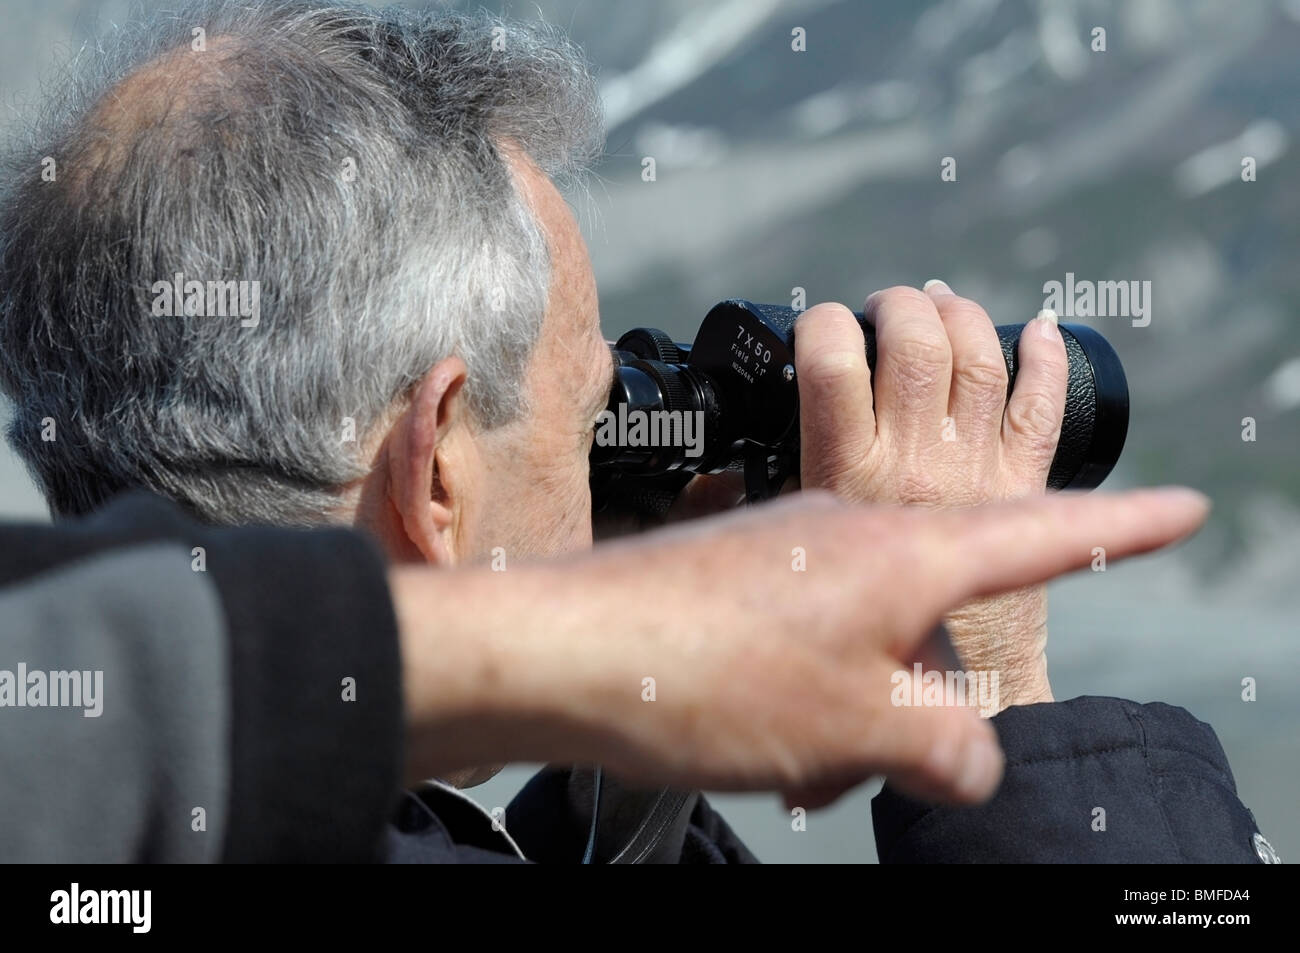 Man Looking through Binoculars and a hand pointing. - Stock Image